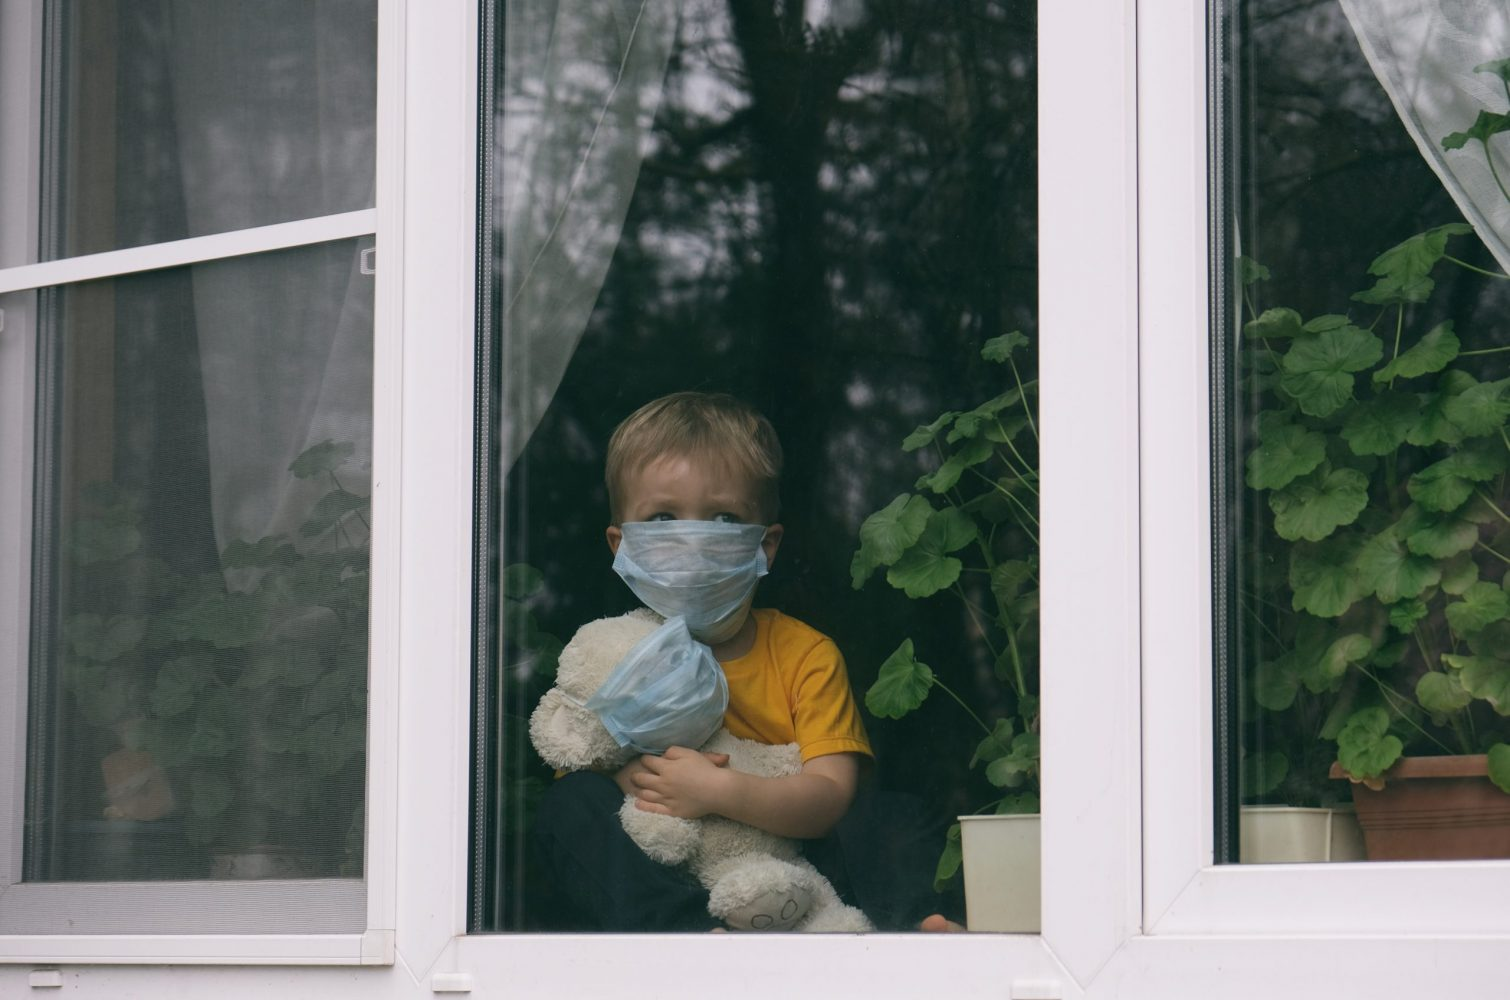 Boy watching out window with mask